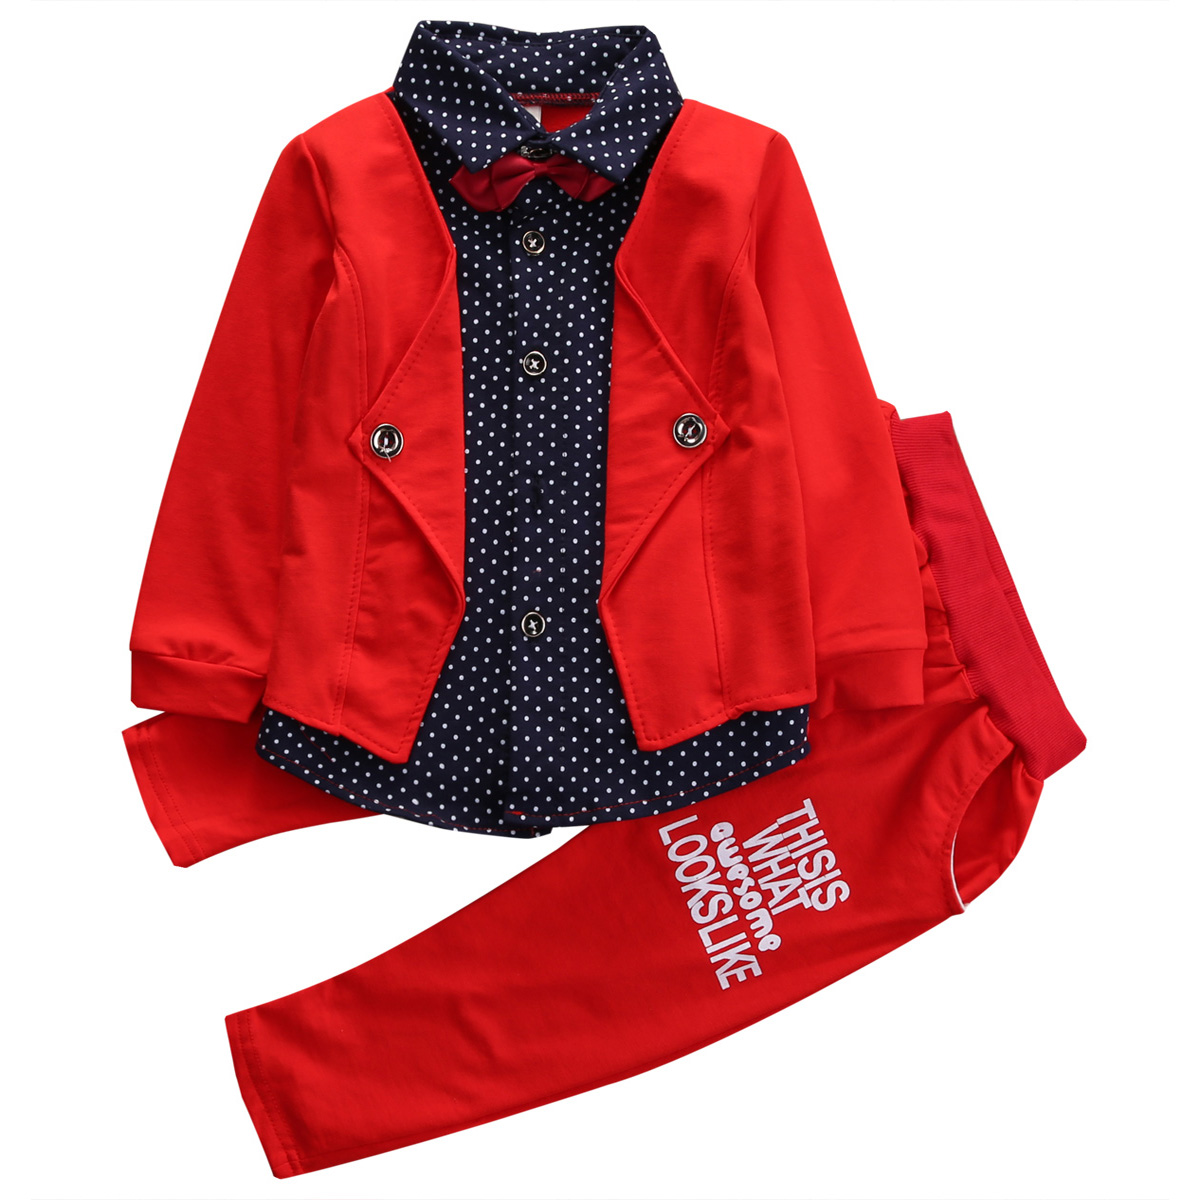 Spring/Autumn Kids Baby Boy Long Sleeve faux two piece Bowtie Shirt Tops+Pants 2pcs Outfits Clothing Set Hot